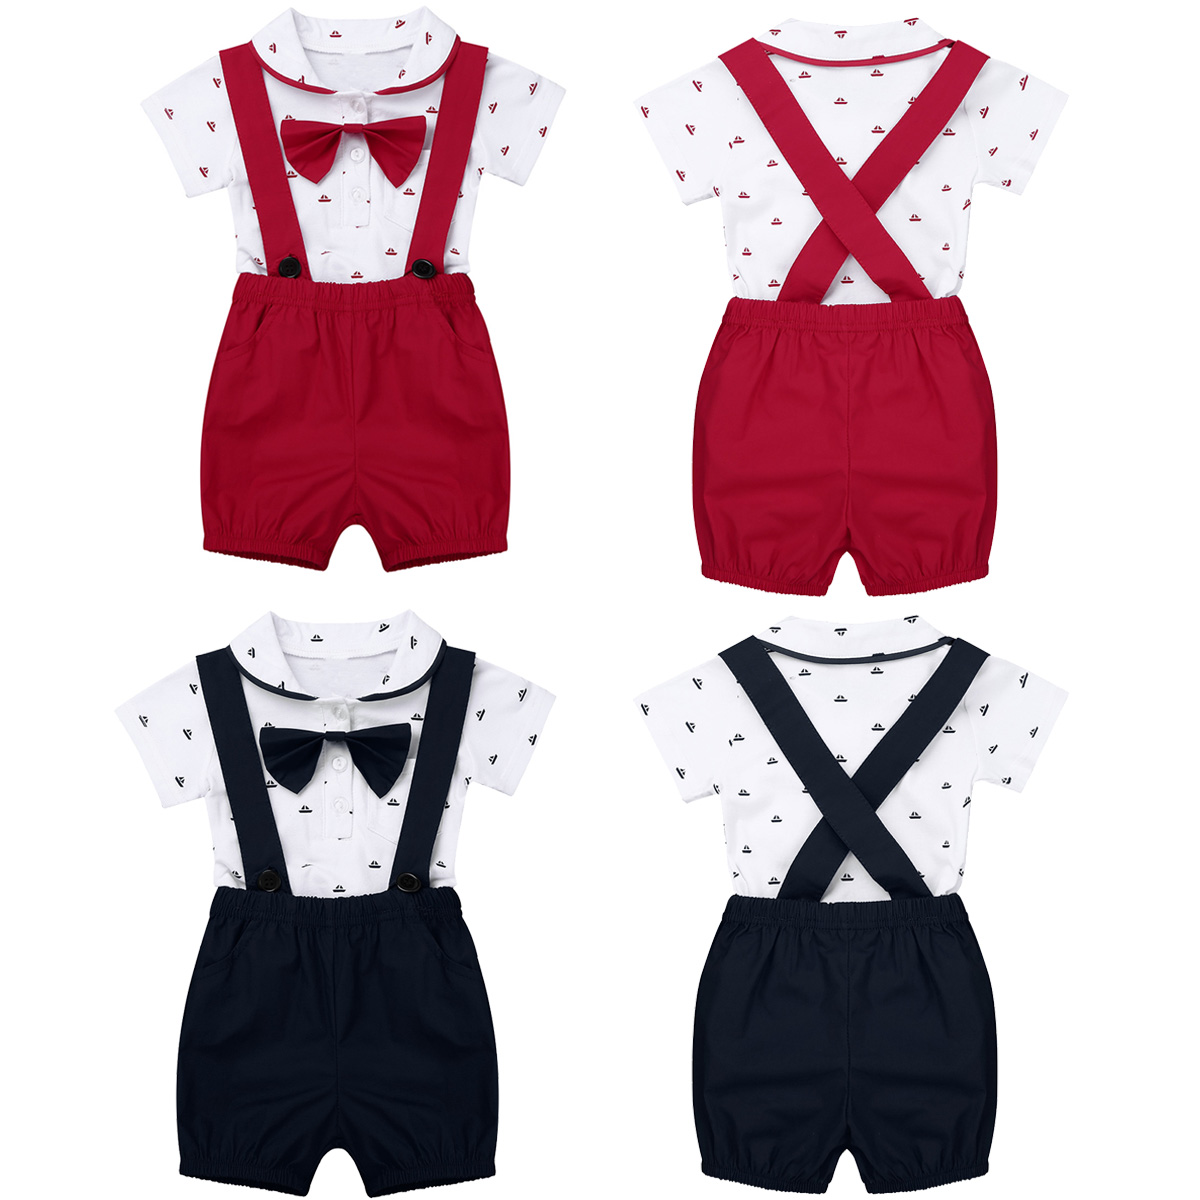 0040e9d4b39e5 Newborn Toddler Infant Baby Boys Party 1ST Birthday Outfit Short Sleeve Lapel  Bowtie Romper Jumpsuit with Suspender Shorts Set-in Clothing Sets from  Mother ...